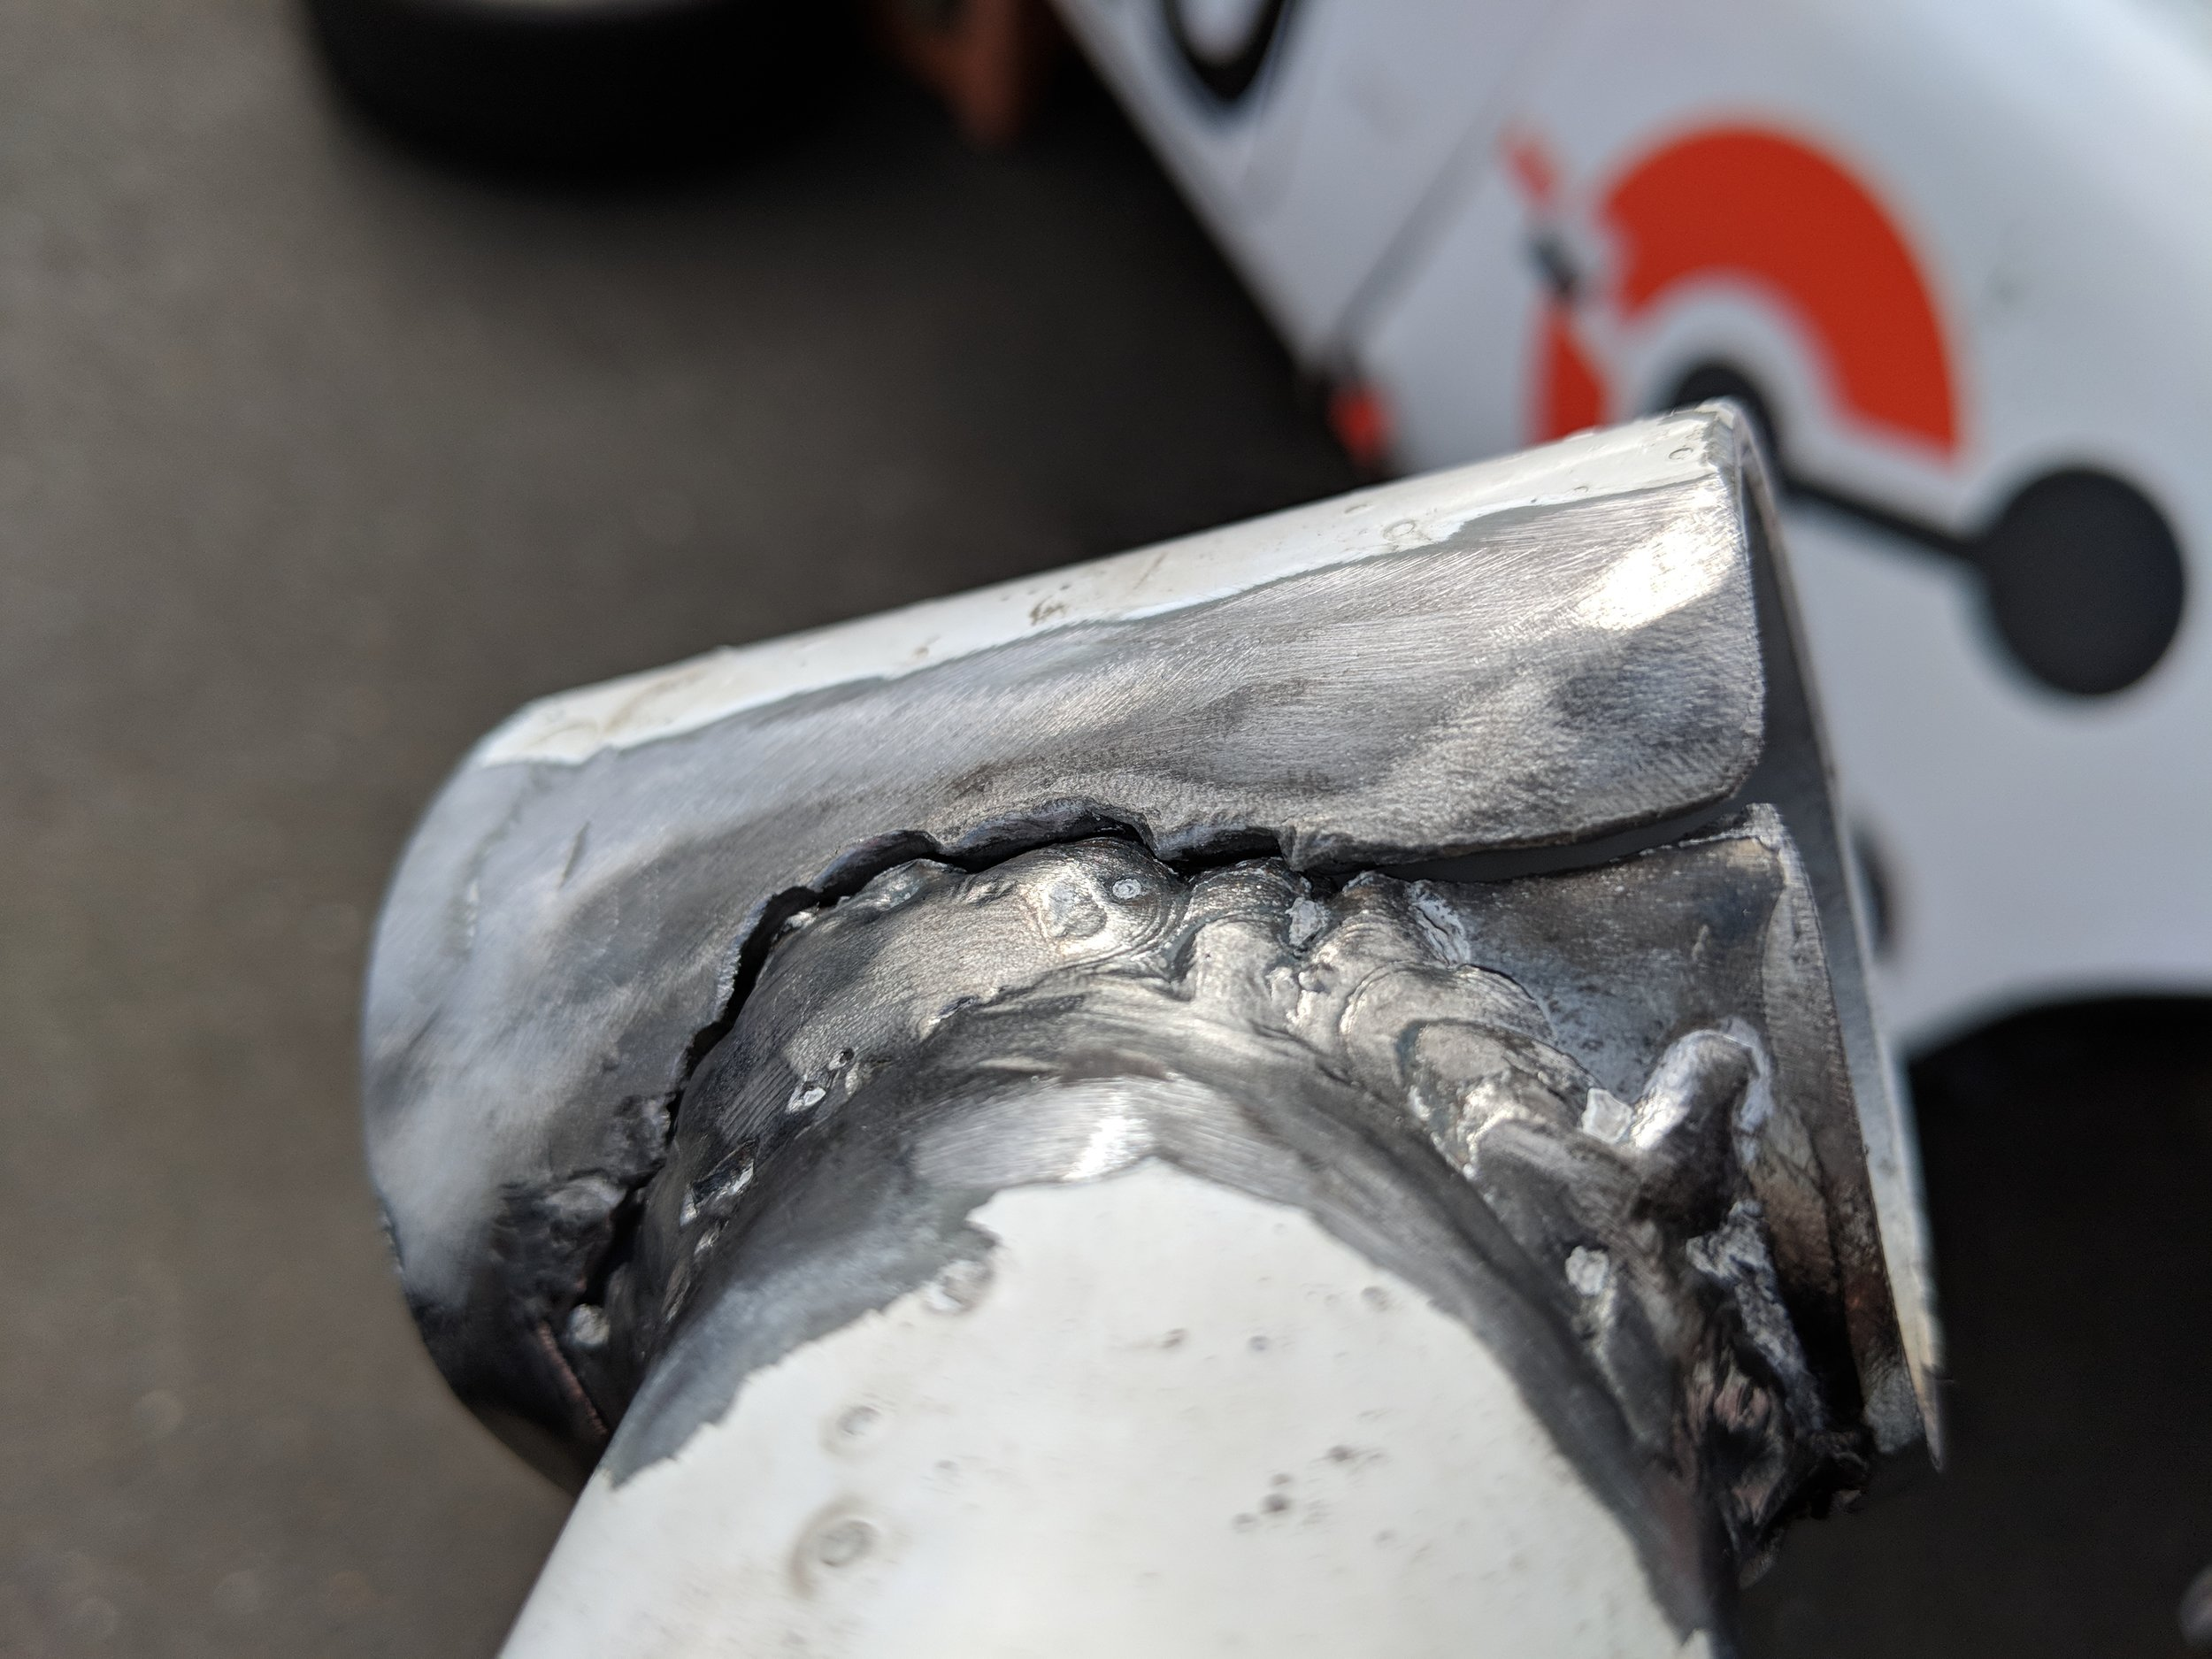 Gearbox mount might have had too much heat-effect